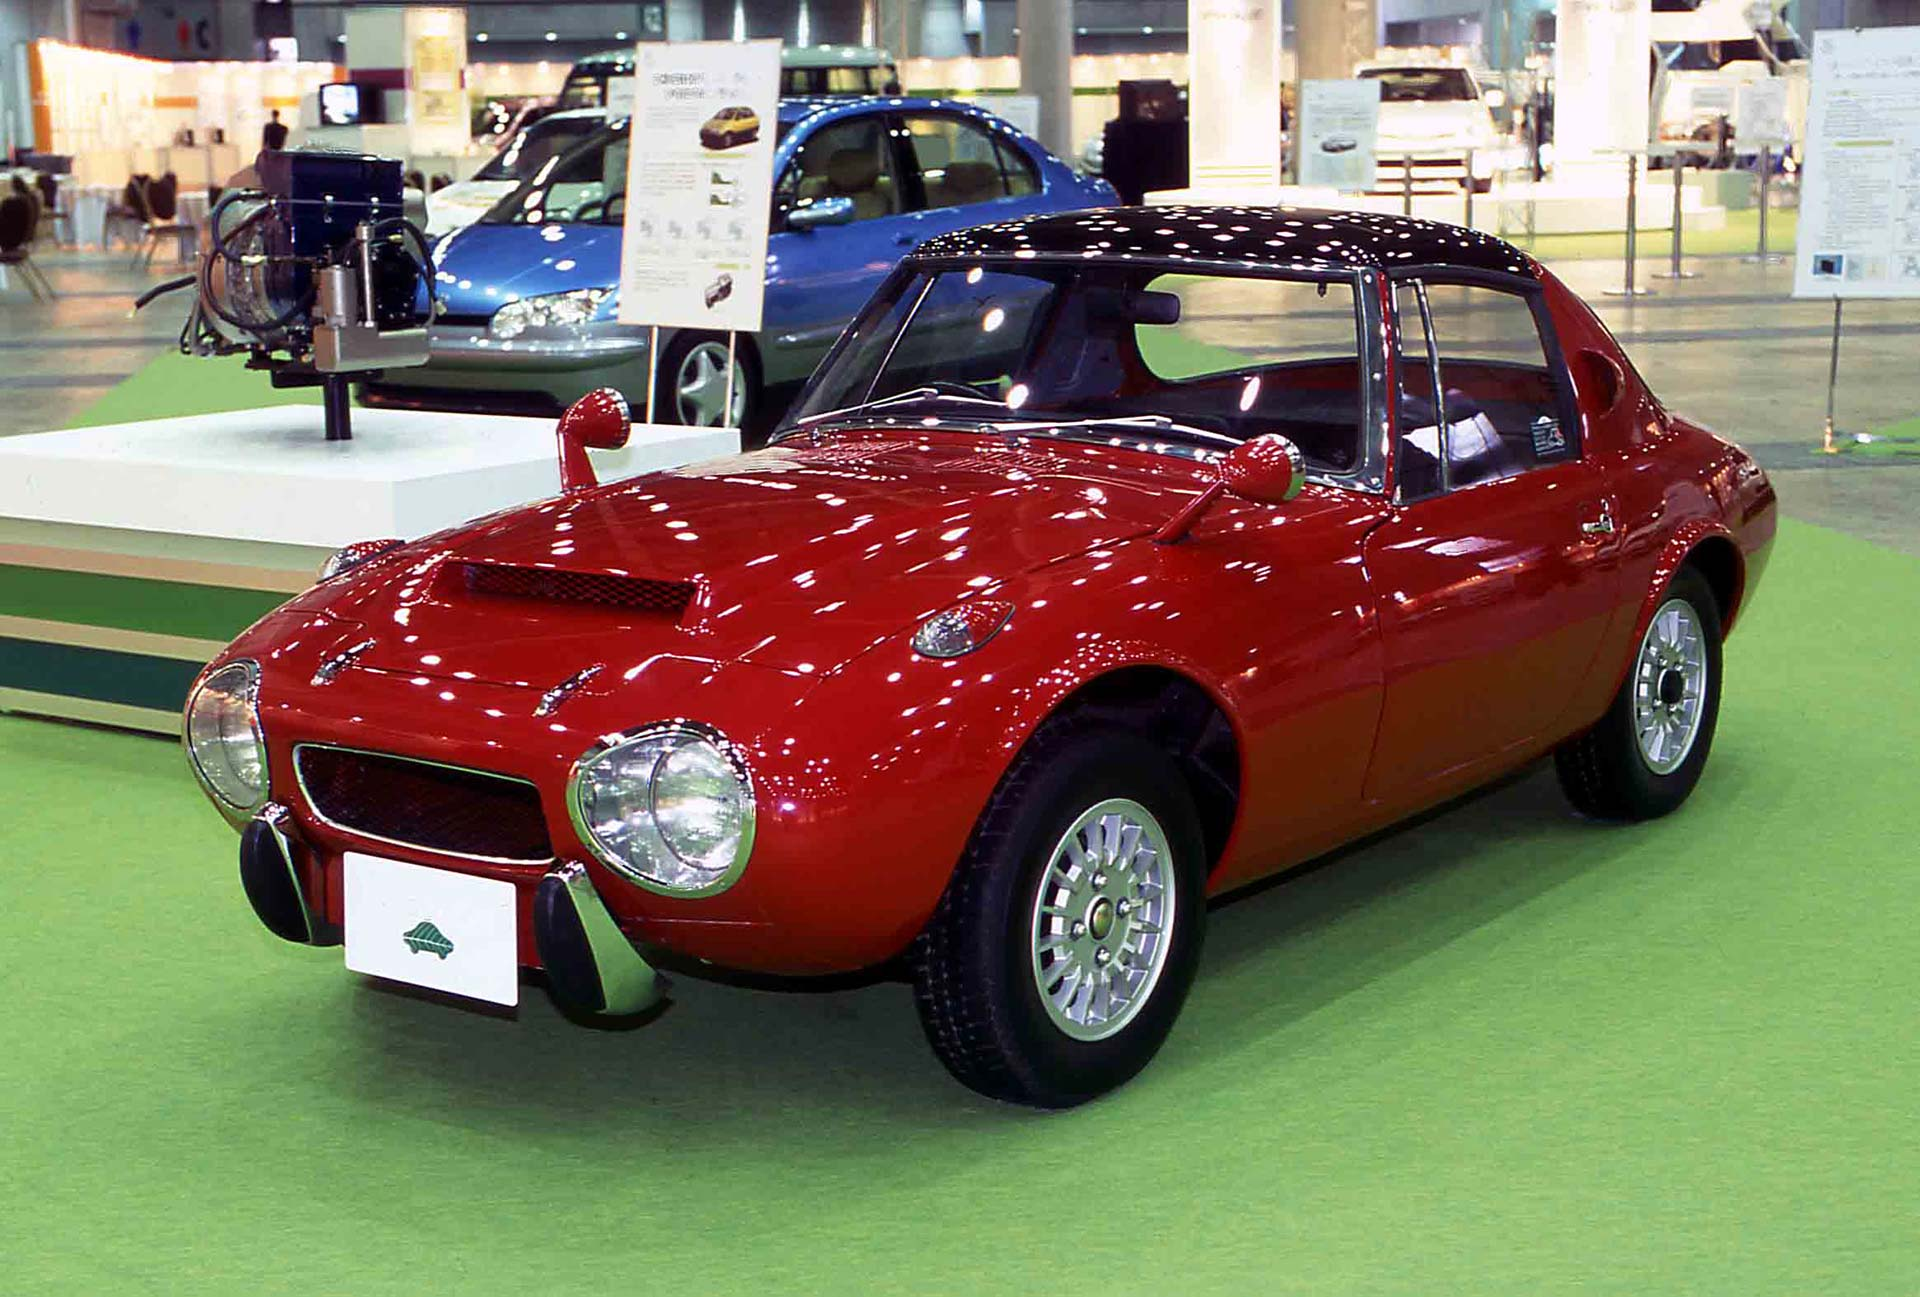 Toyota Sports 800 Gas Turbine Hybrid concept vehicle